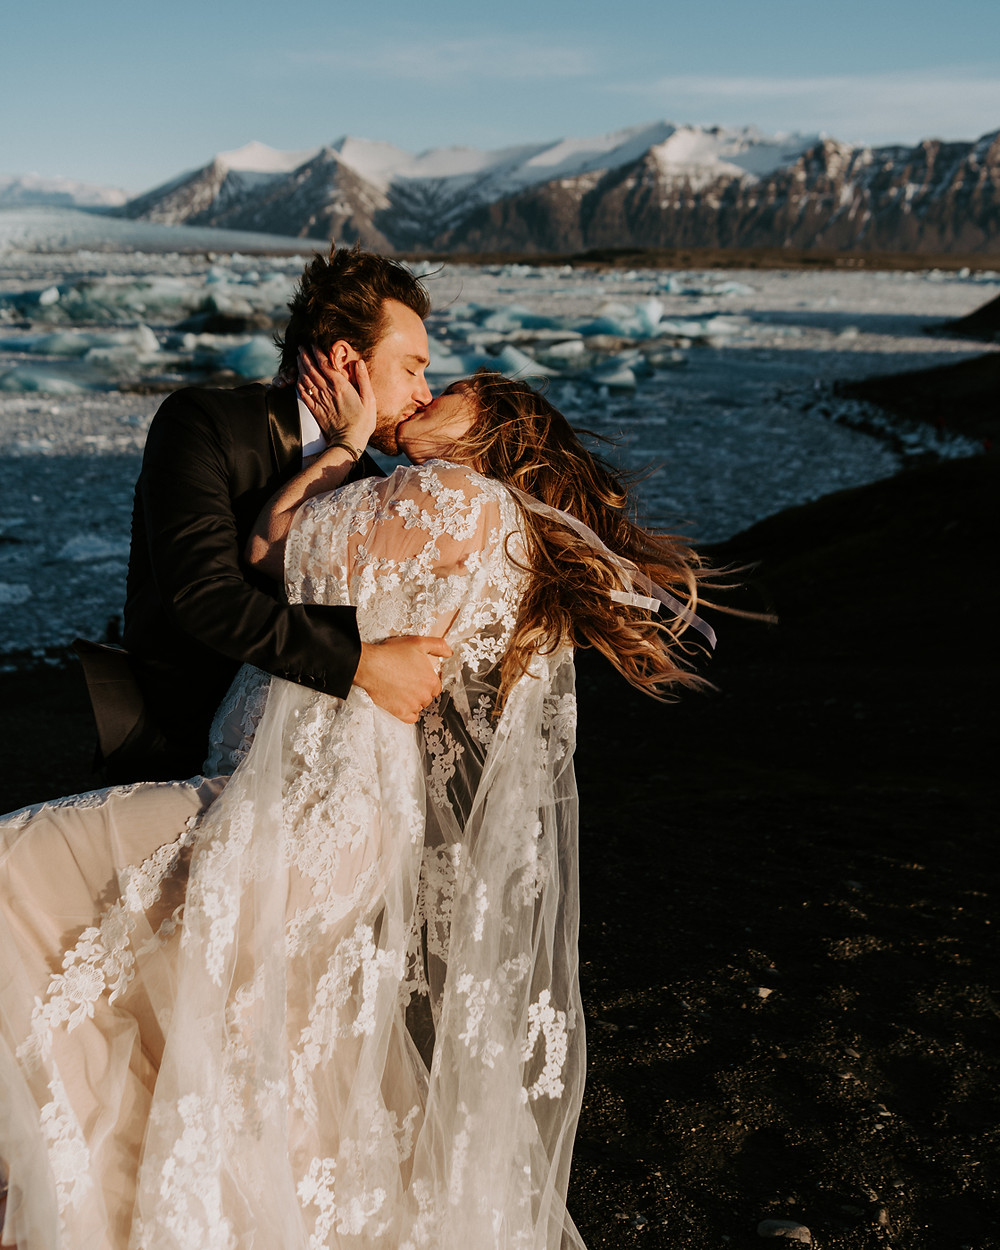 Man and woman kissing on wedding day with glacier background in Iceland